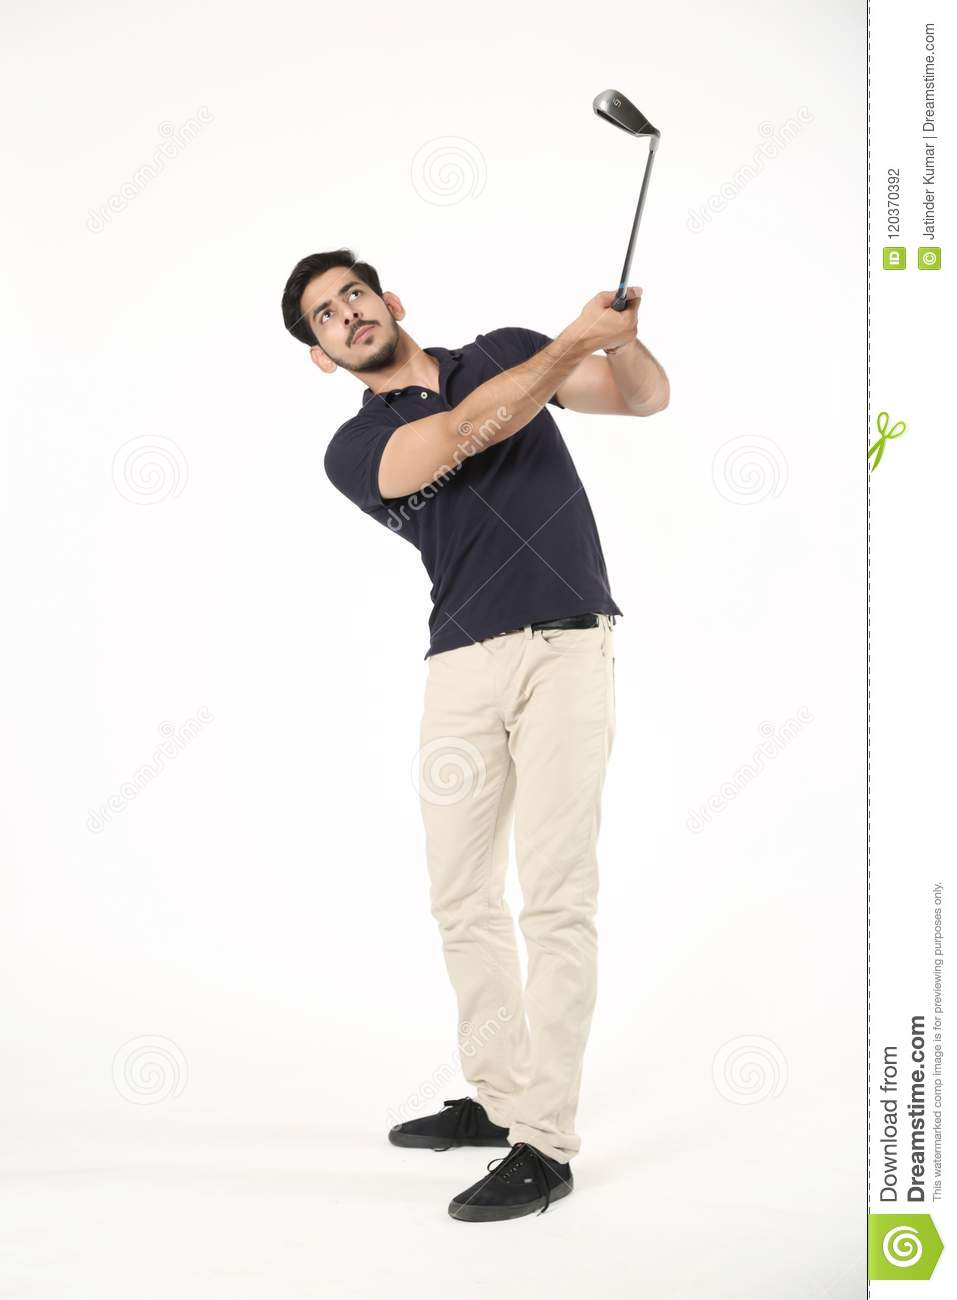 Boy playing with golf stick